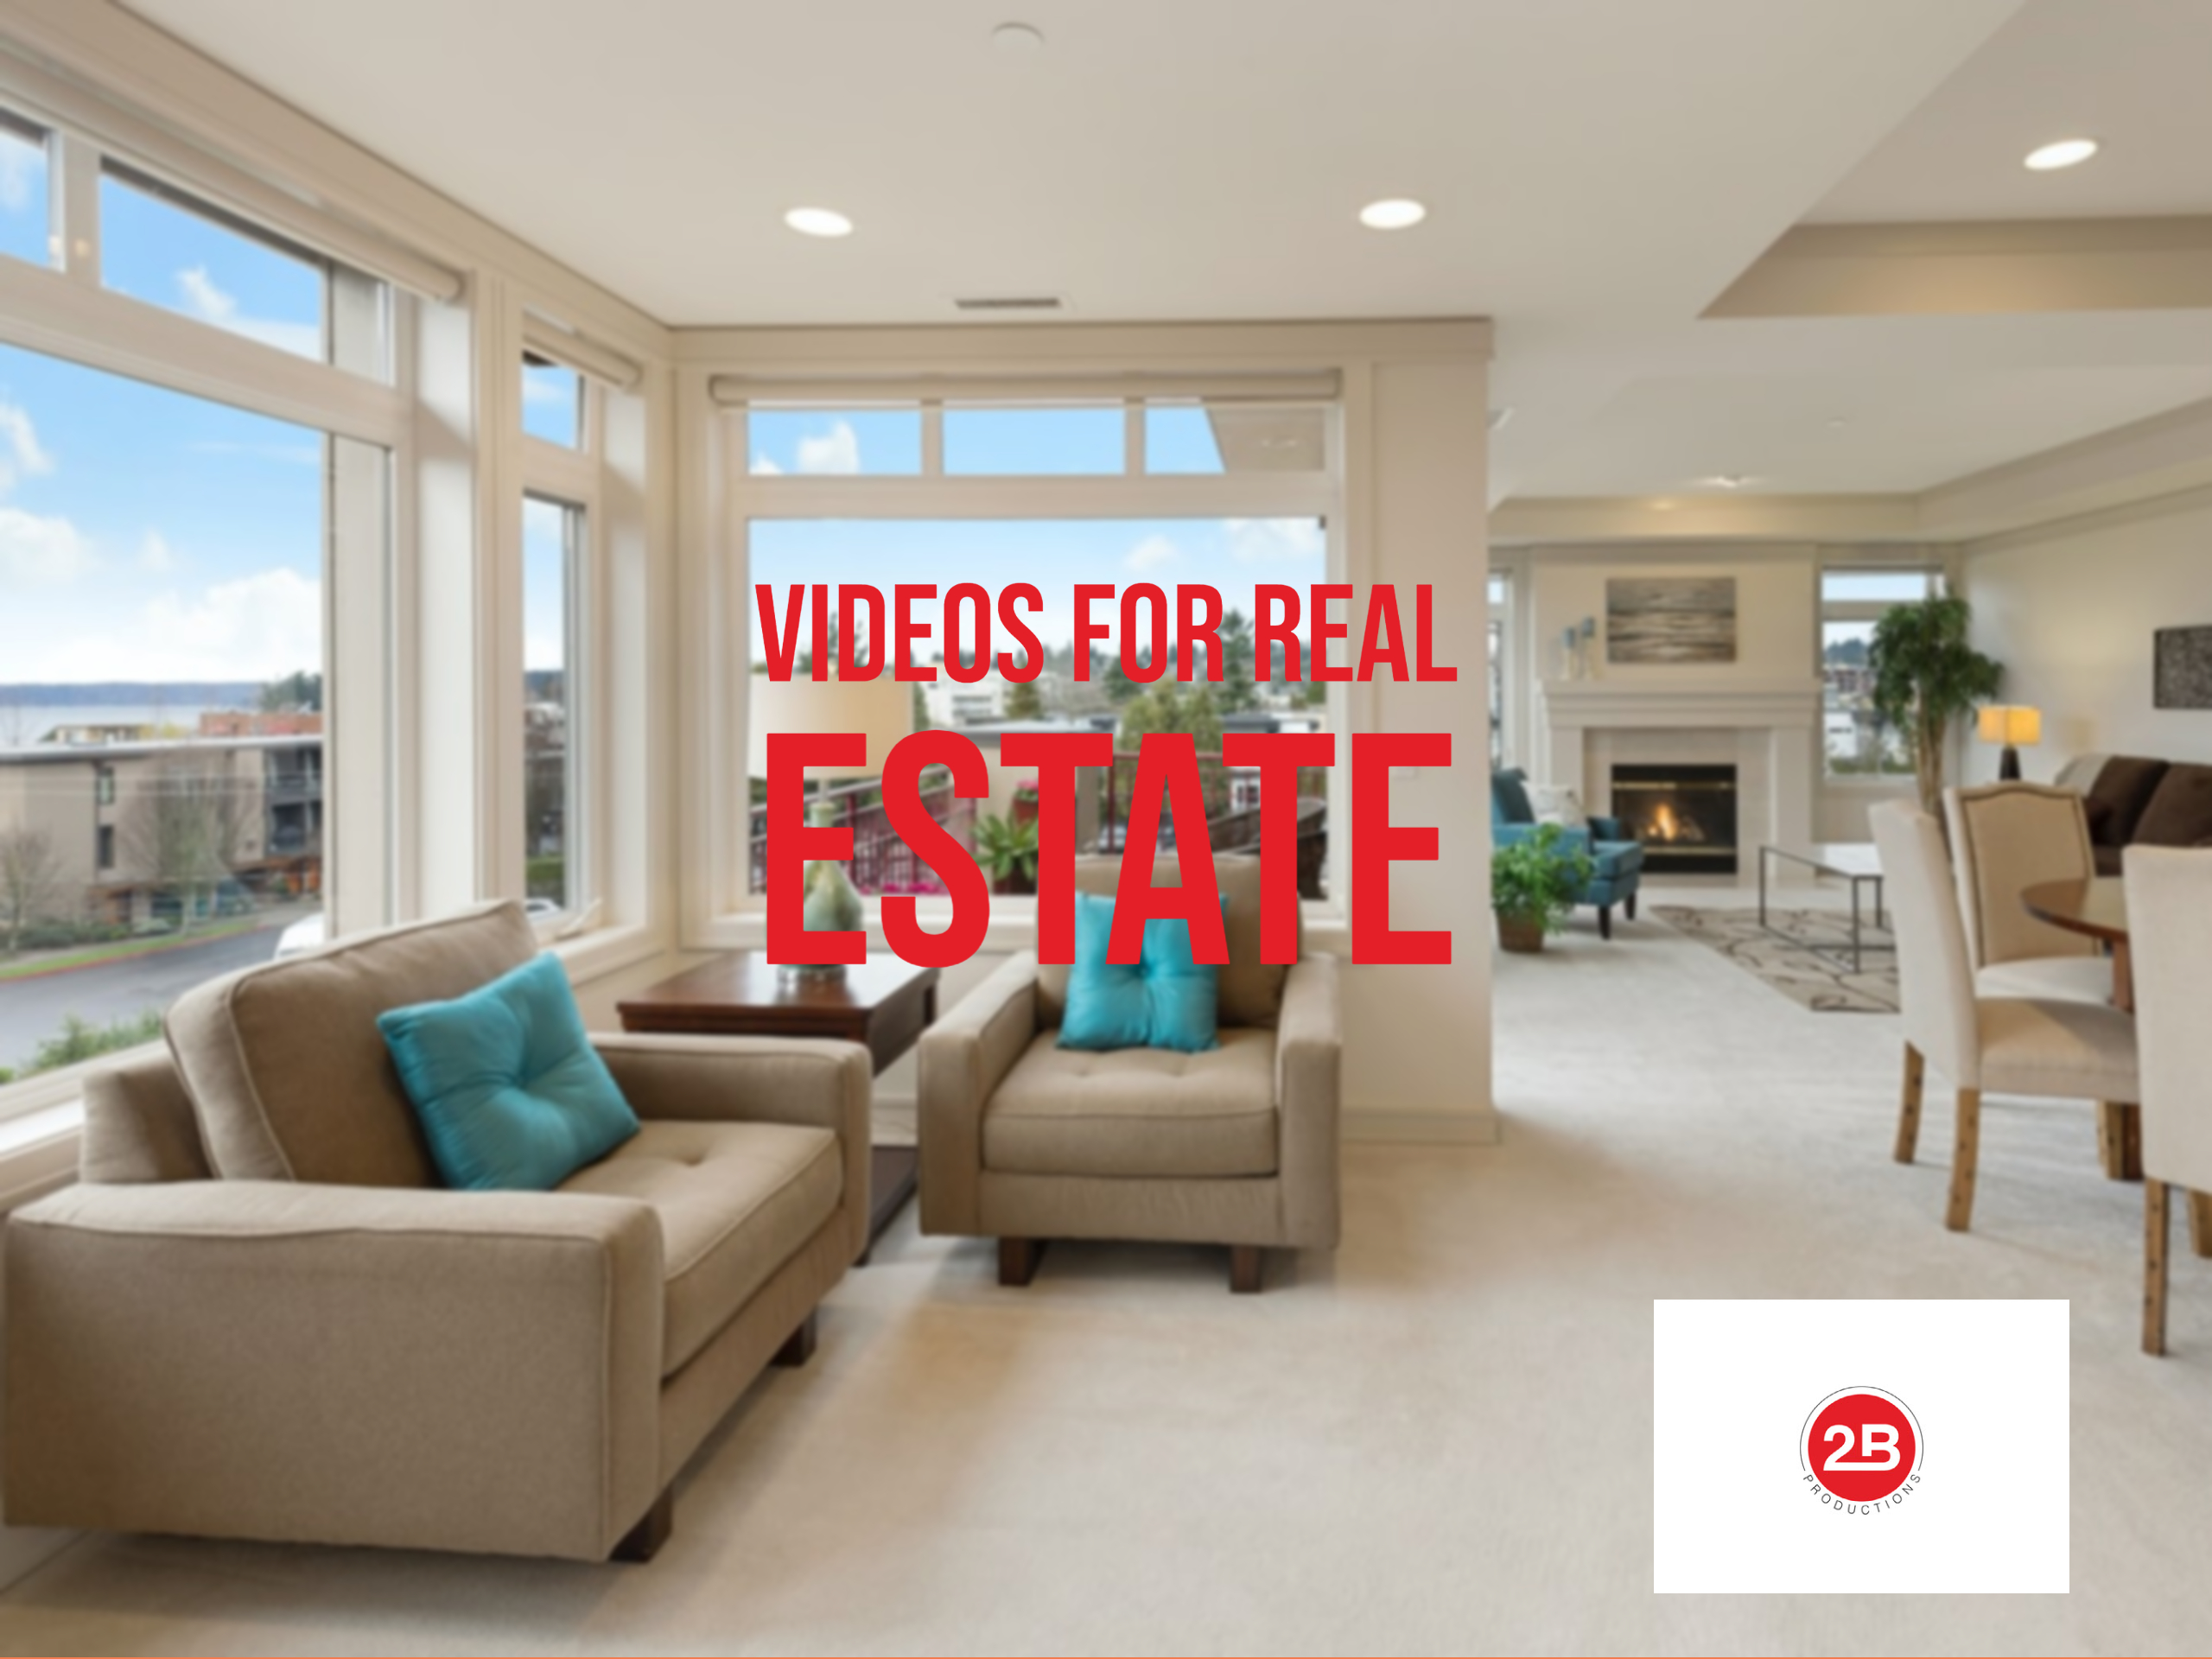 The Importance of Using Video for Real Estate